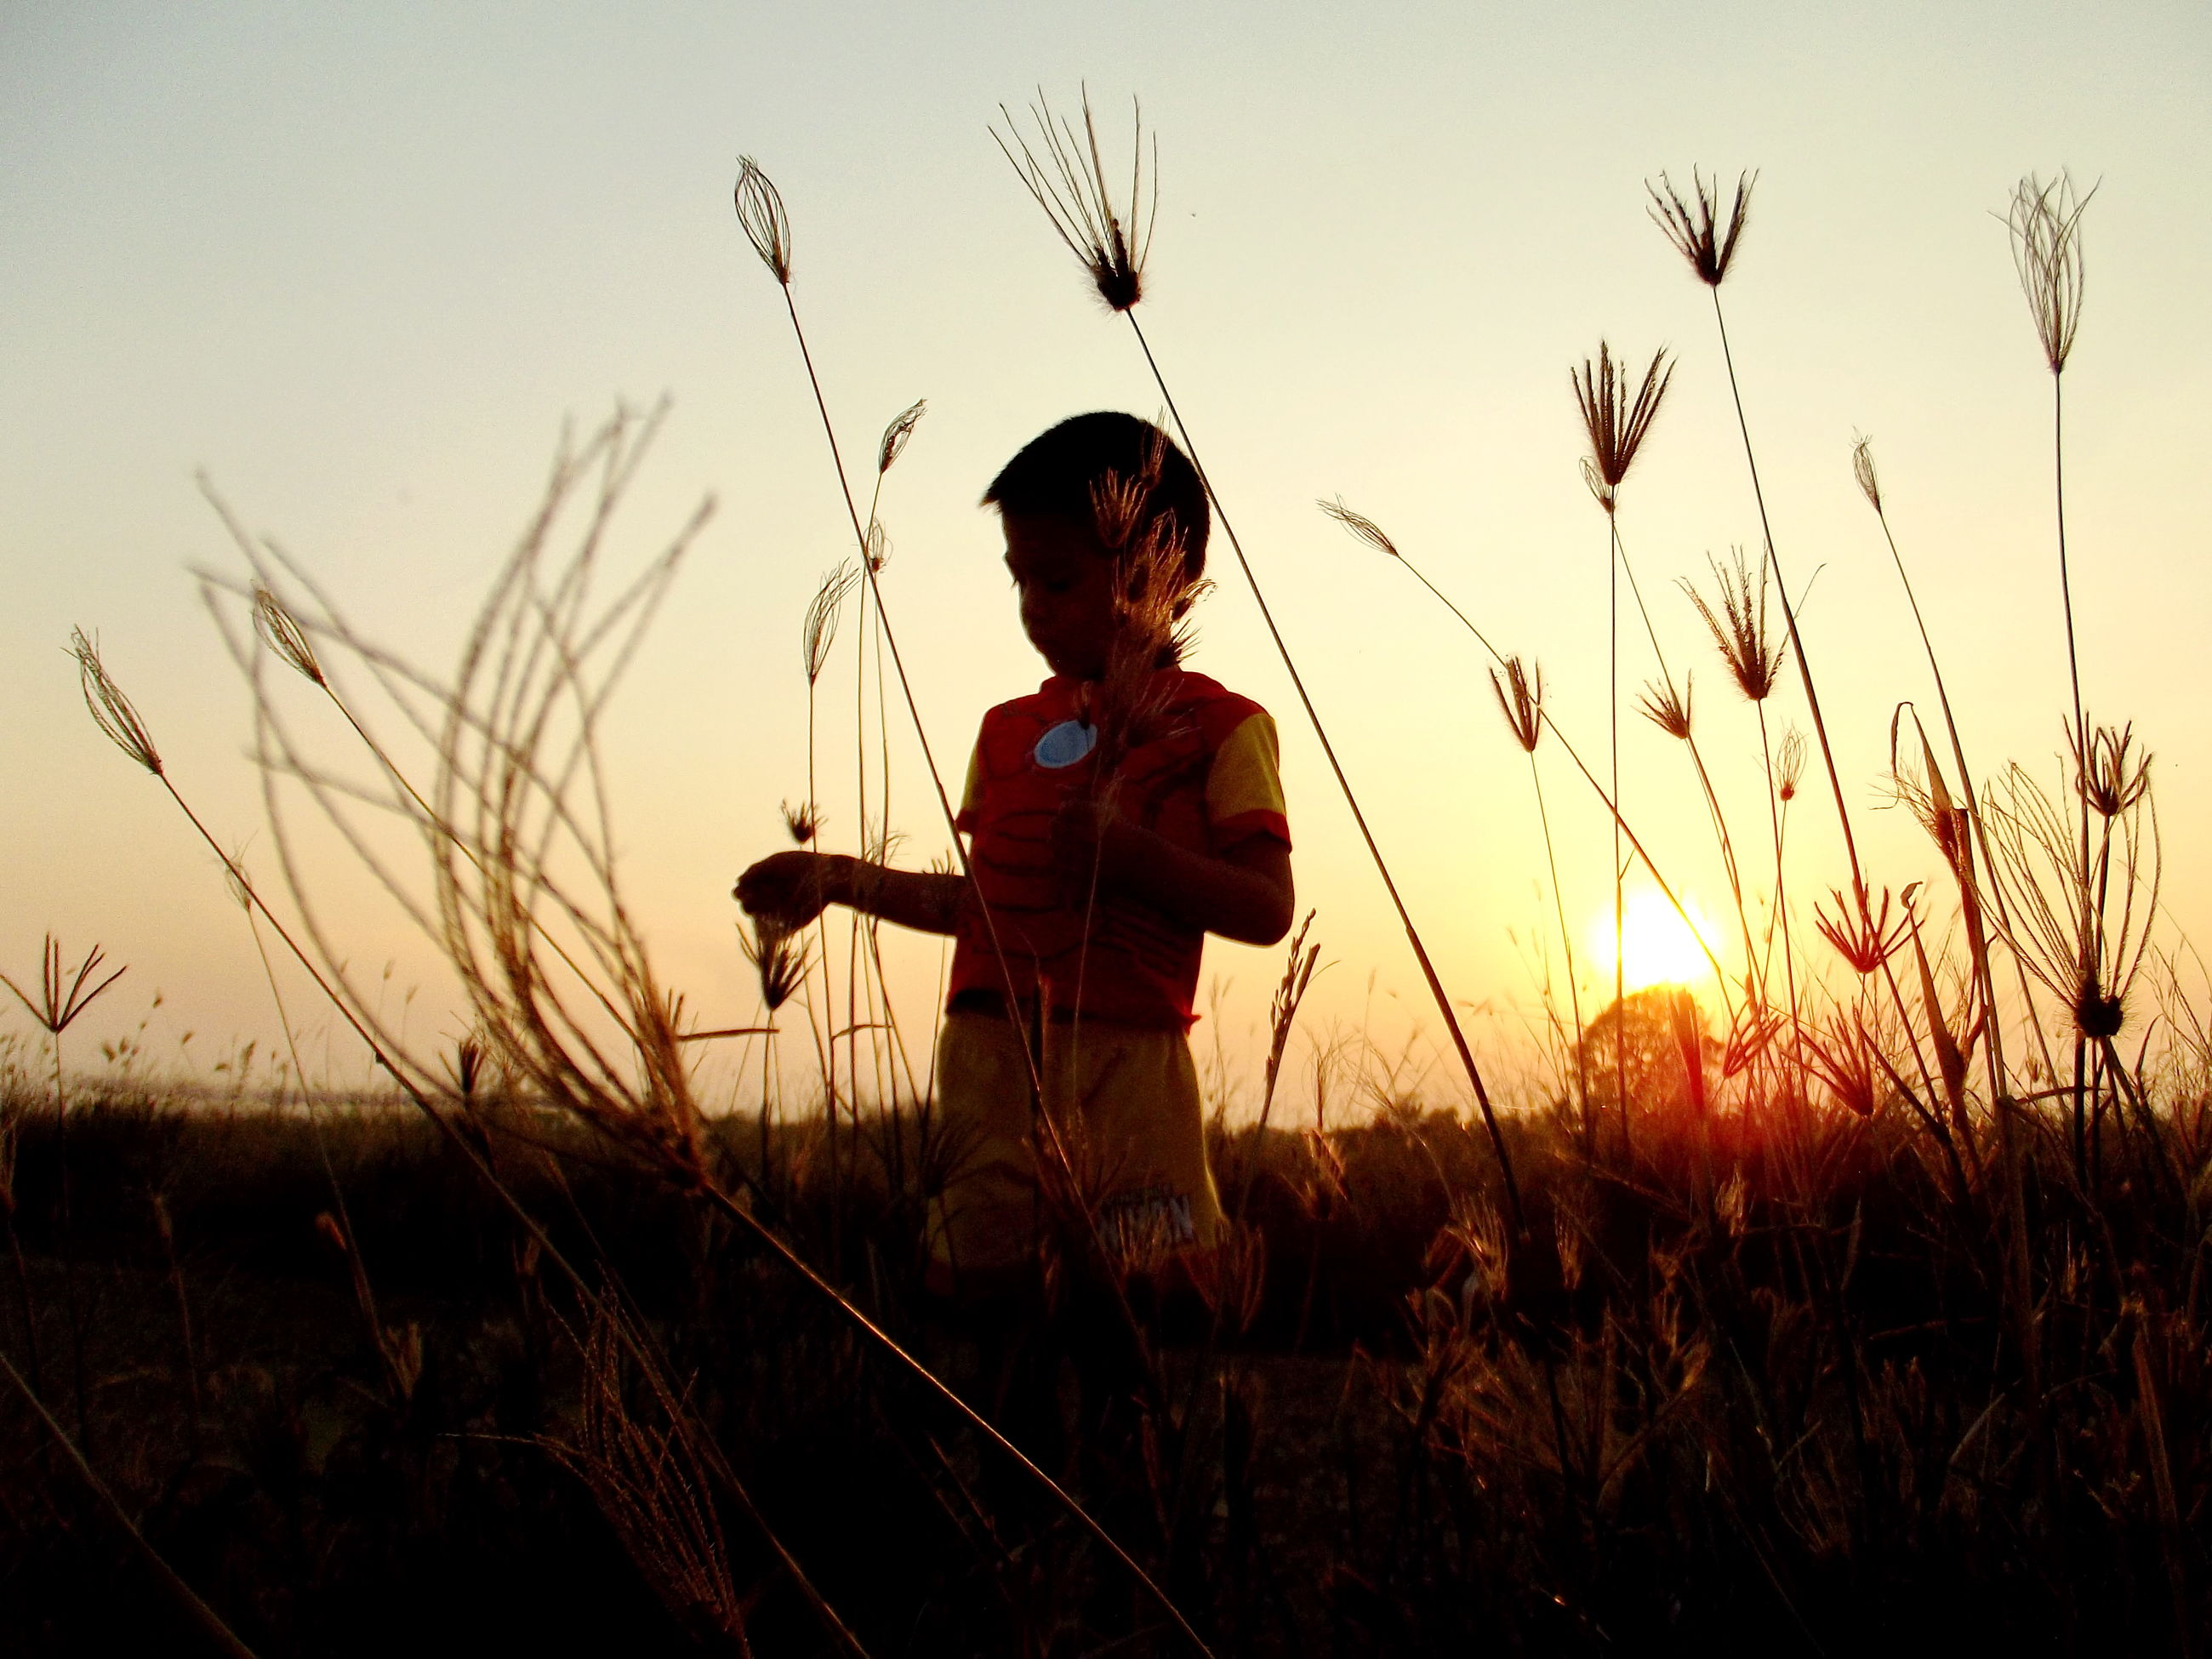 grass, lifestyles, leisure activity, sun, sunset, sunlight, sunbeam, field, plant, lens flare, growth, outdoors, nature, person, casual clothing, sky, focus on foreground, non-urban scene, young adult, beauty in nature, moody sky, scenics, vacations, hobbies